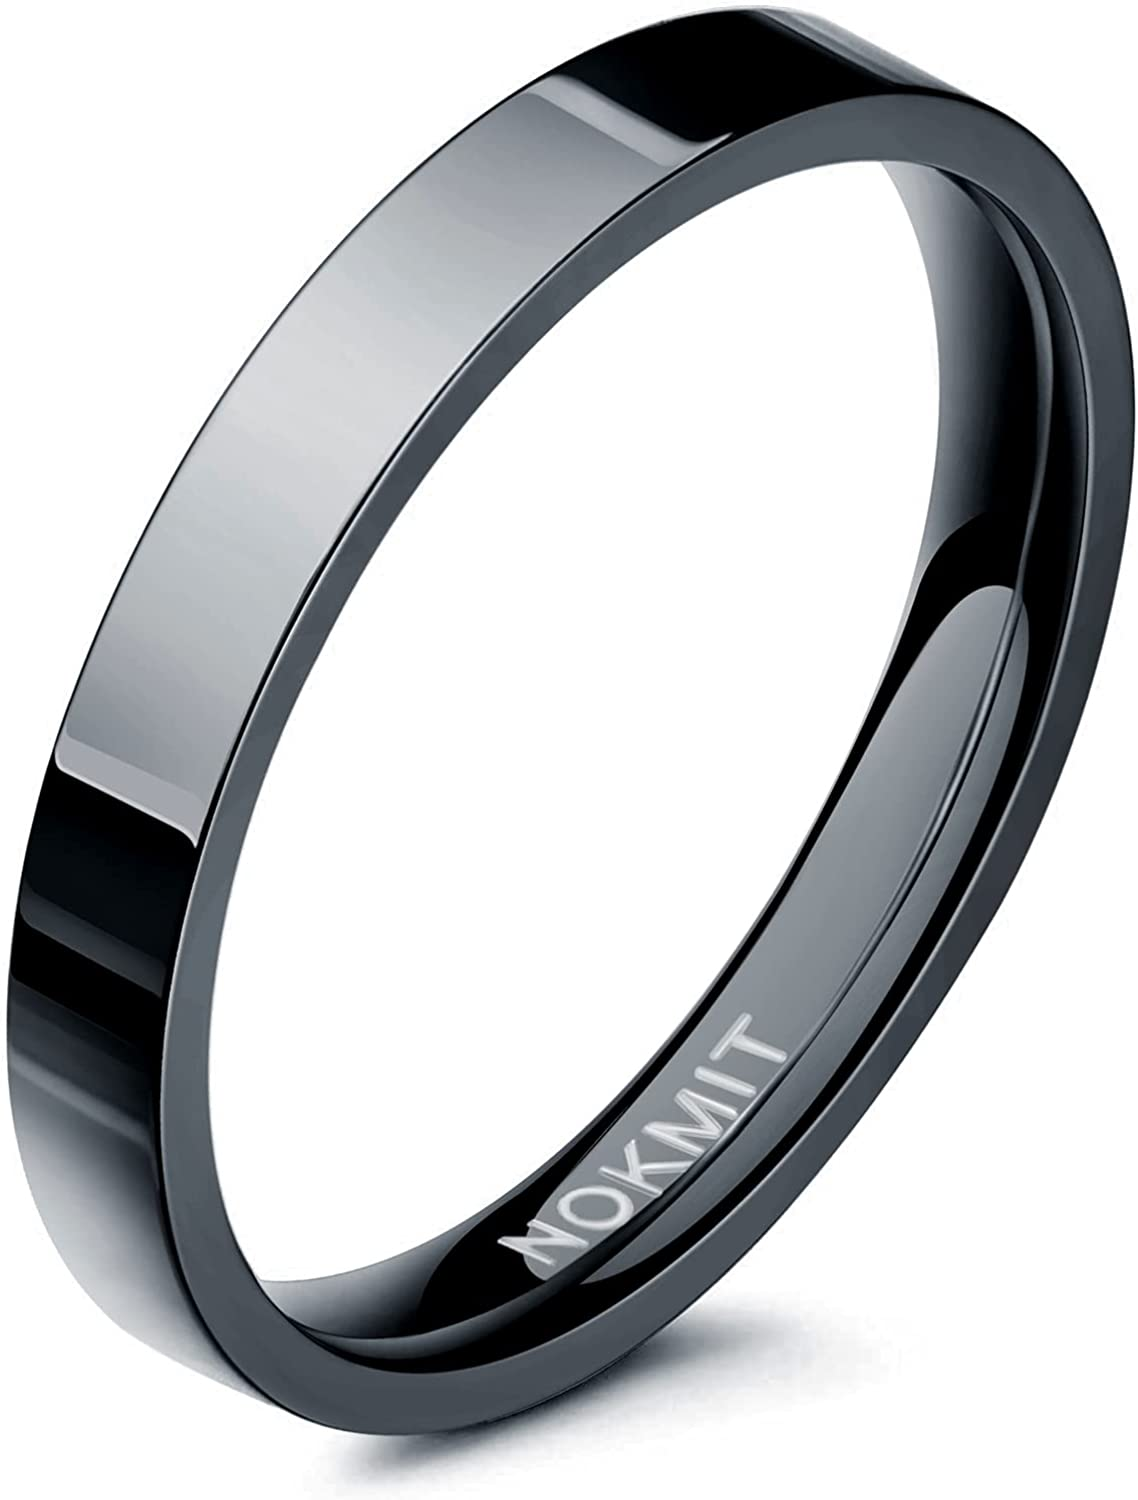 NOKMIT 3mm Wedding Band 14K Gold-Filled Rings for Women Men Stackable Stacking Rings Pointer Finger Ring Plain Dome Silver/Black Comfort Fit Size 5 to 10